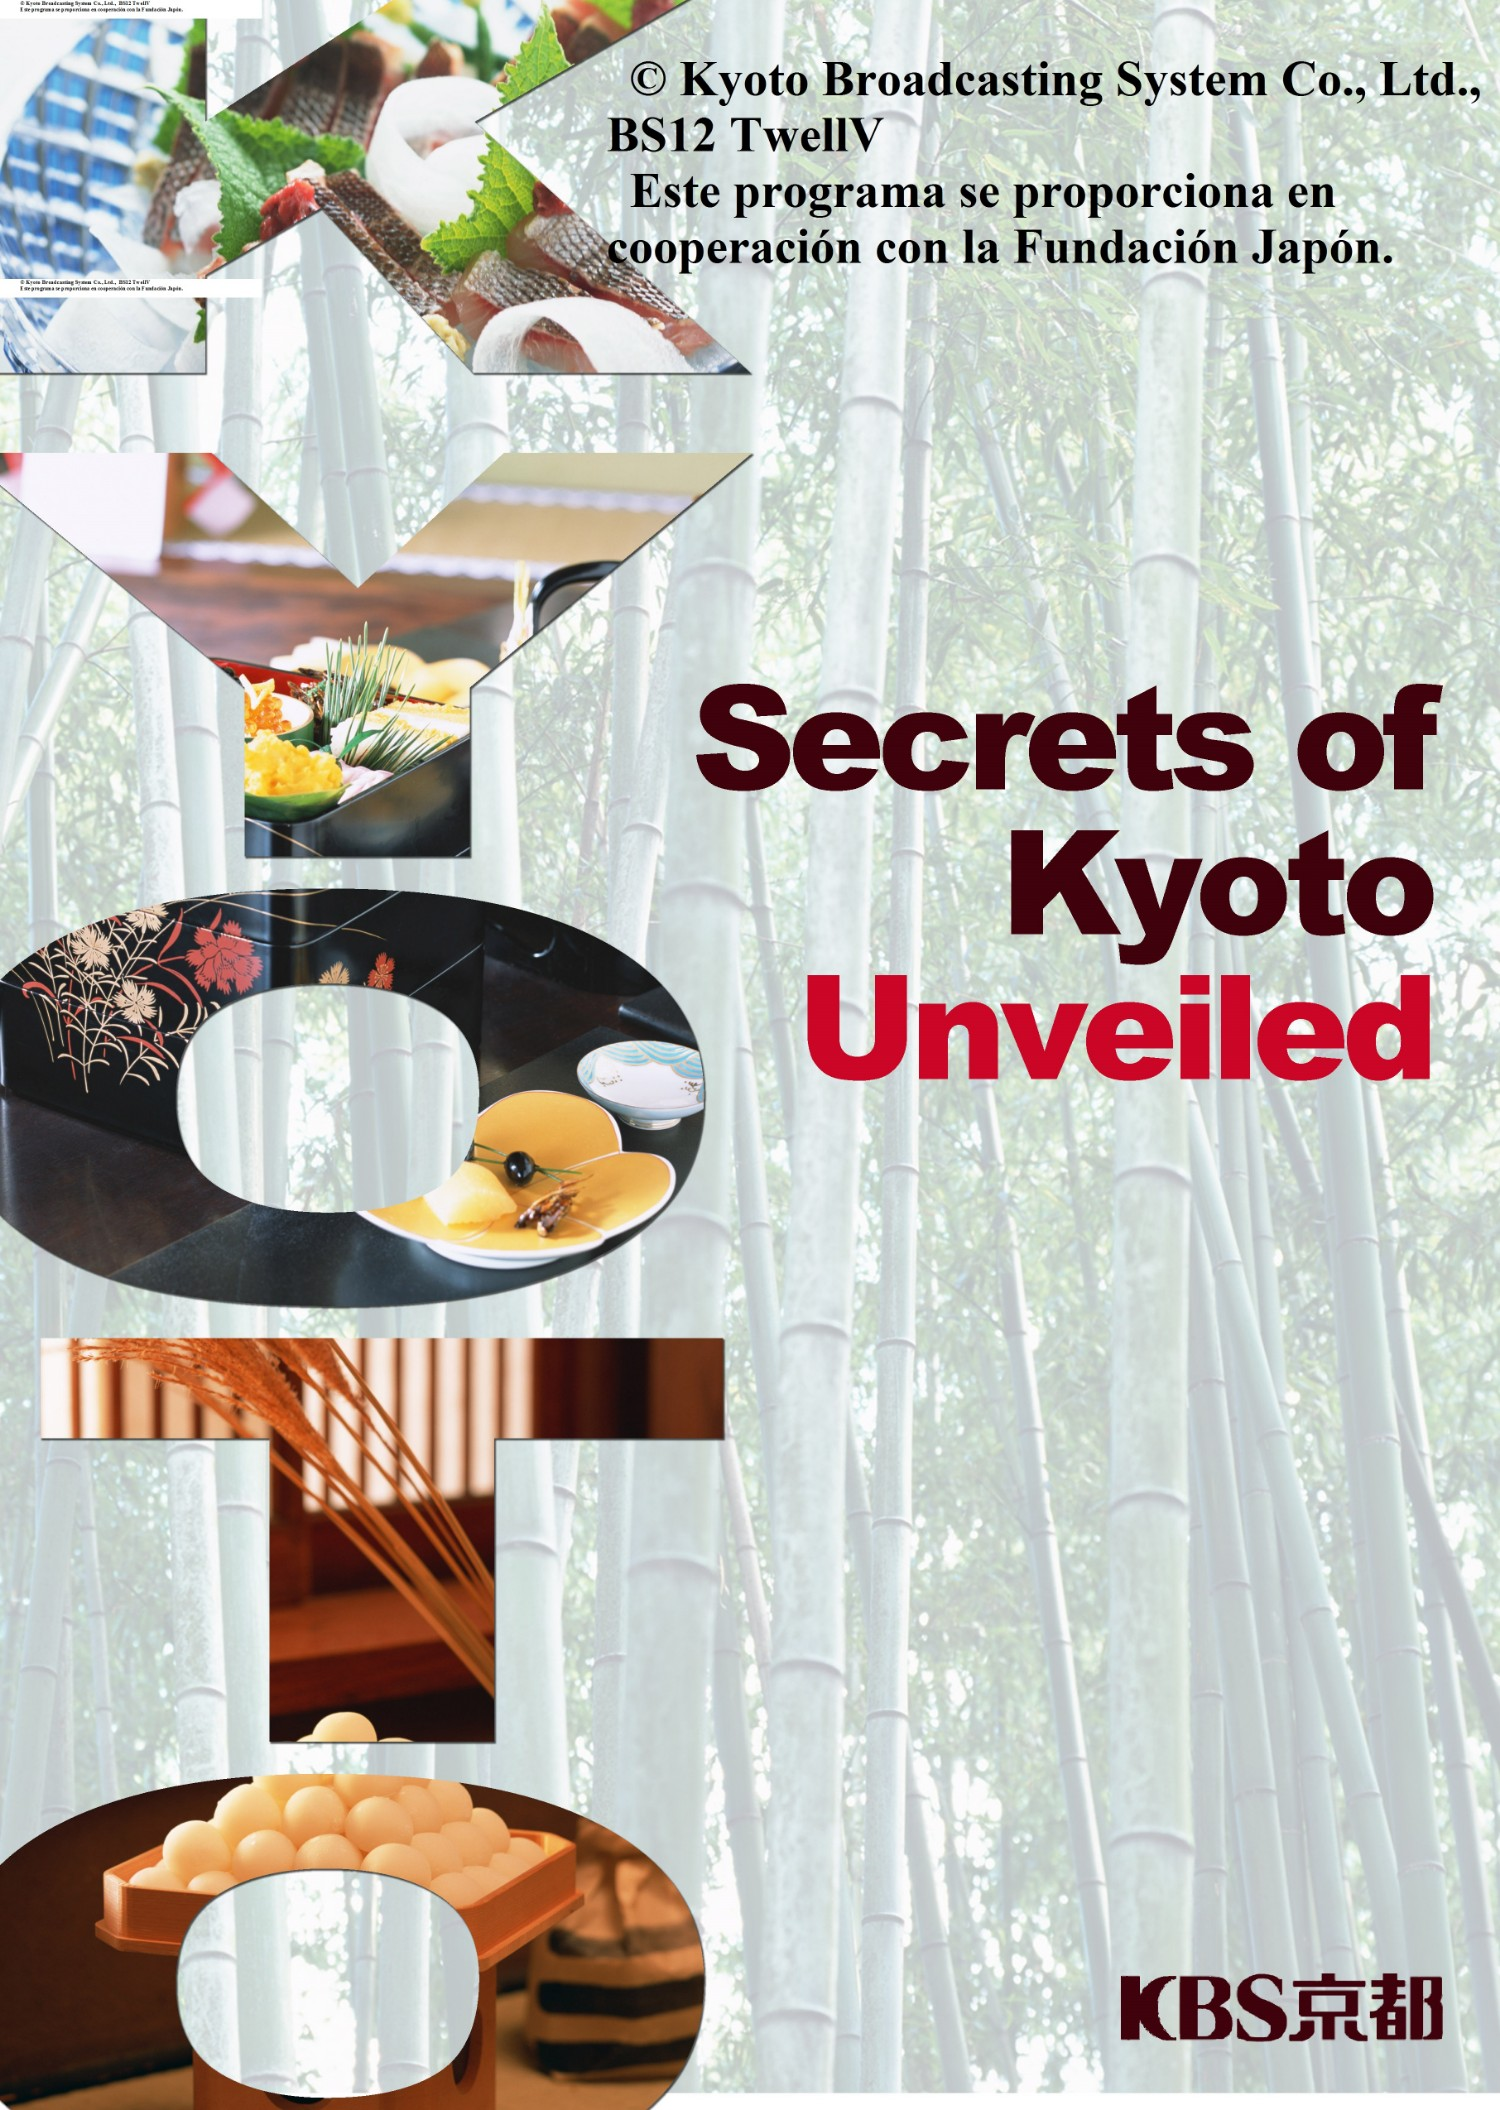 Secret of kyoto unveiled_Photo